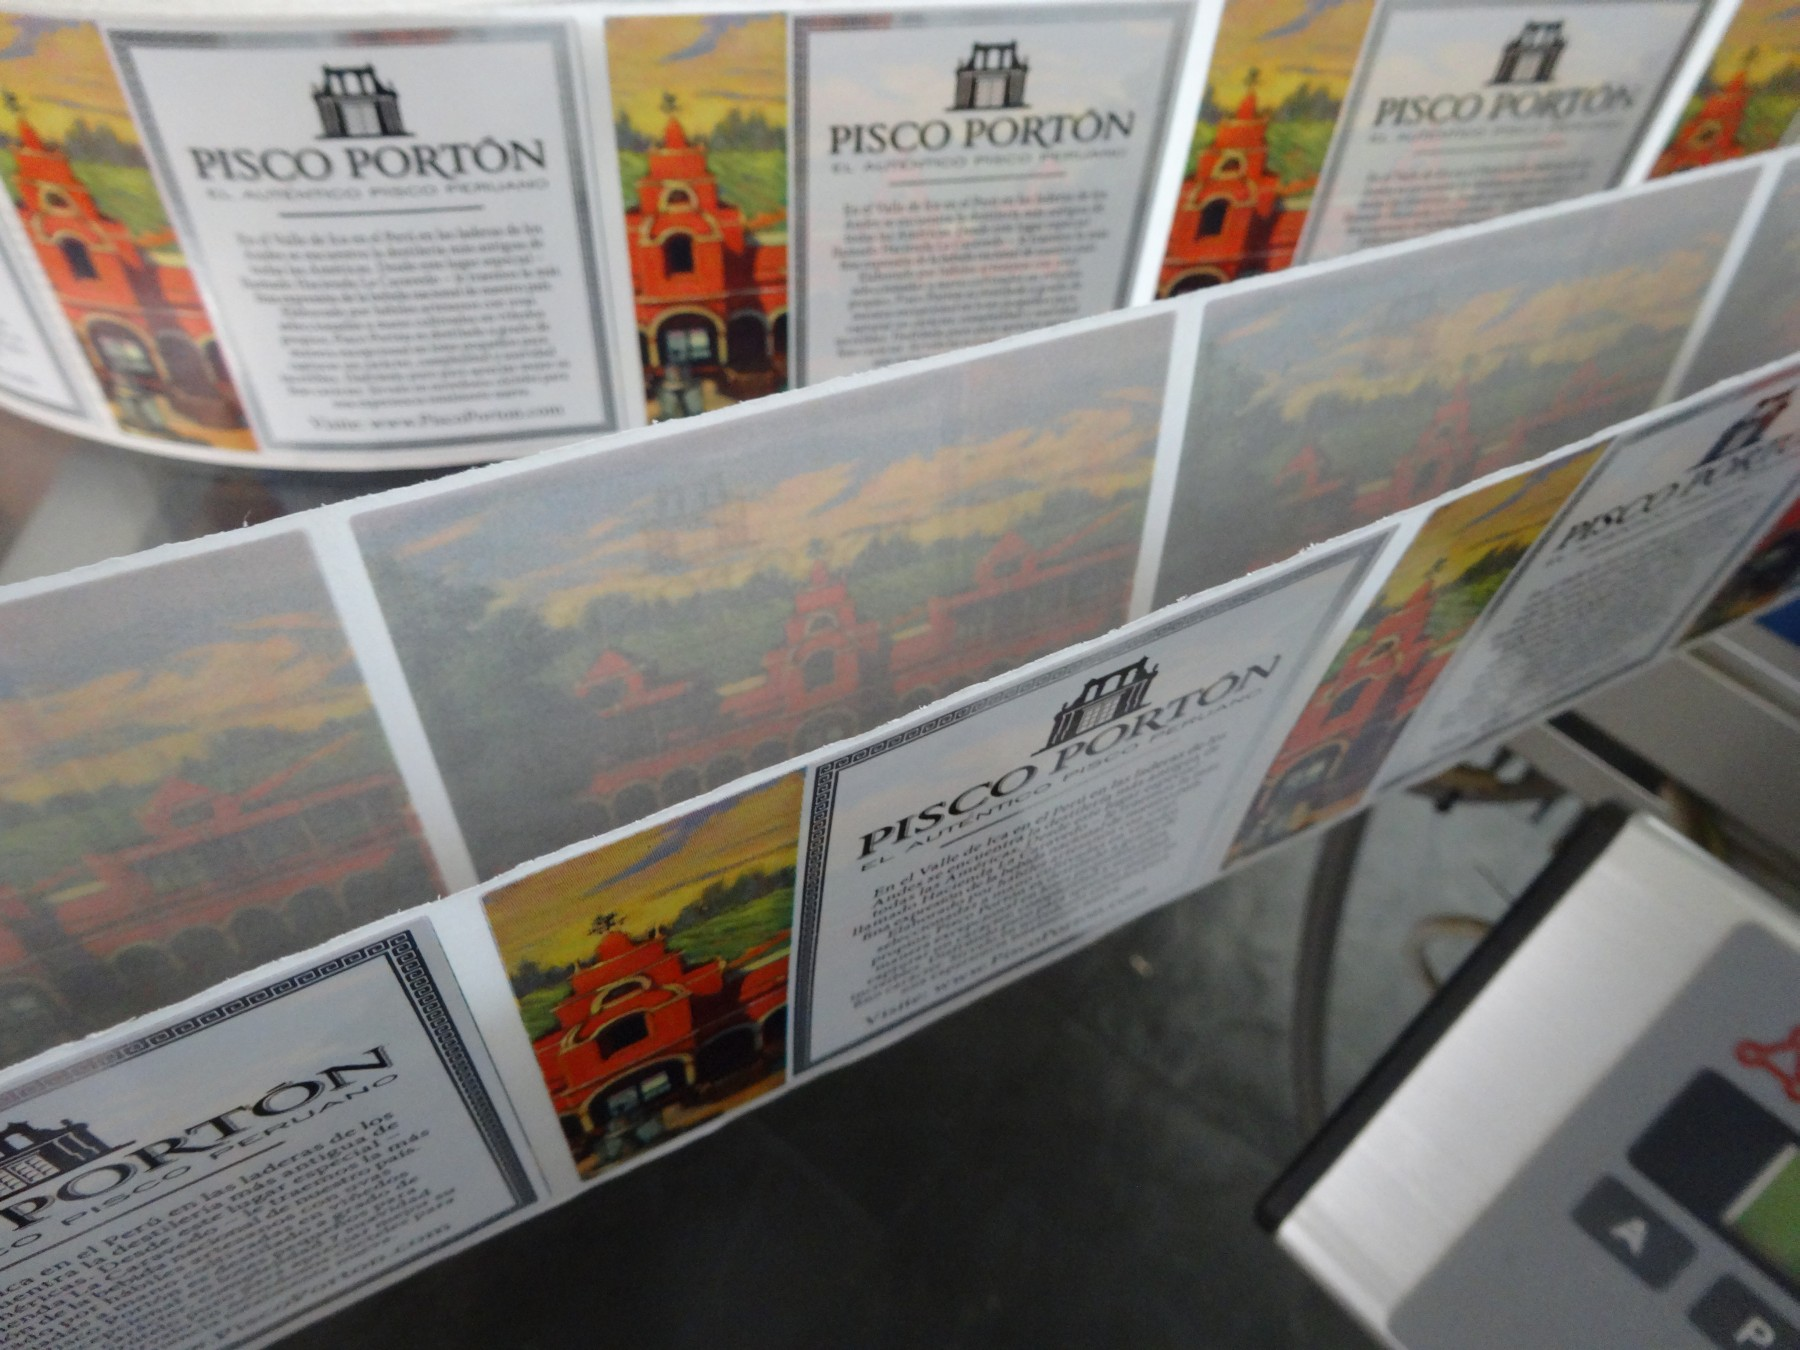 Pisco Portón double labels